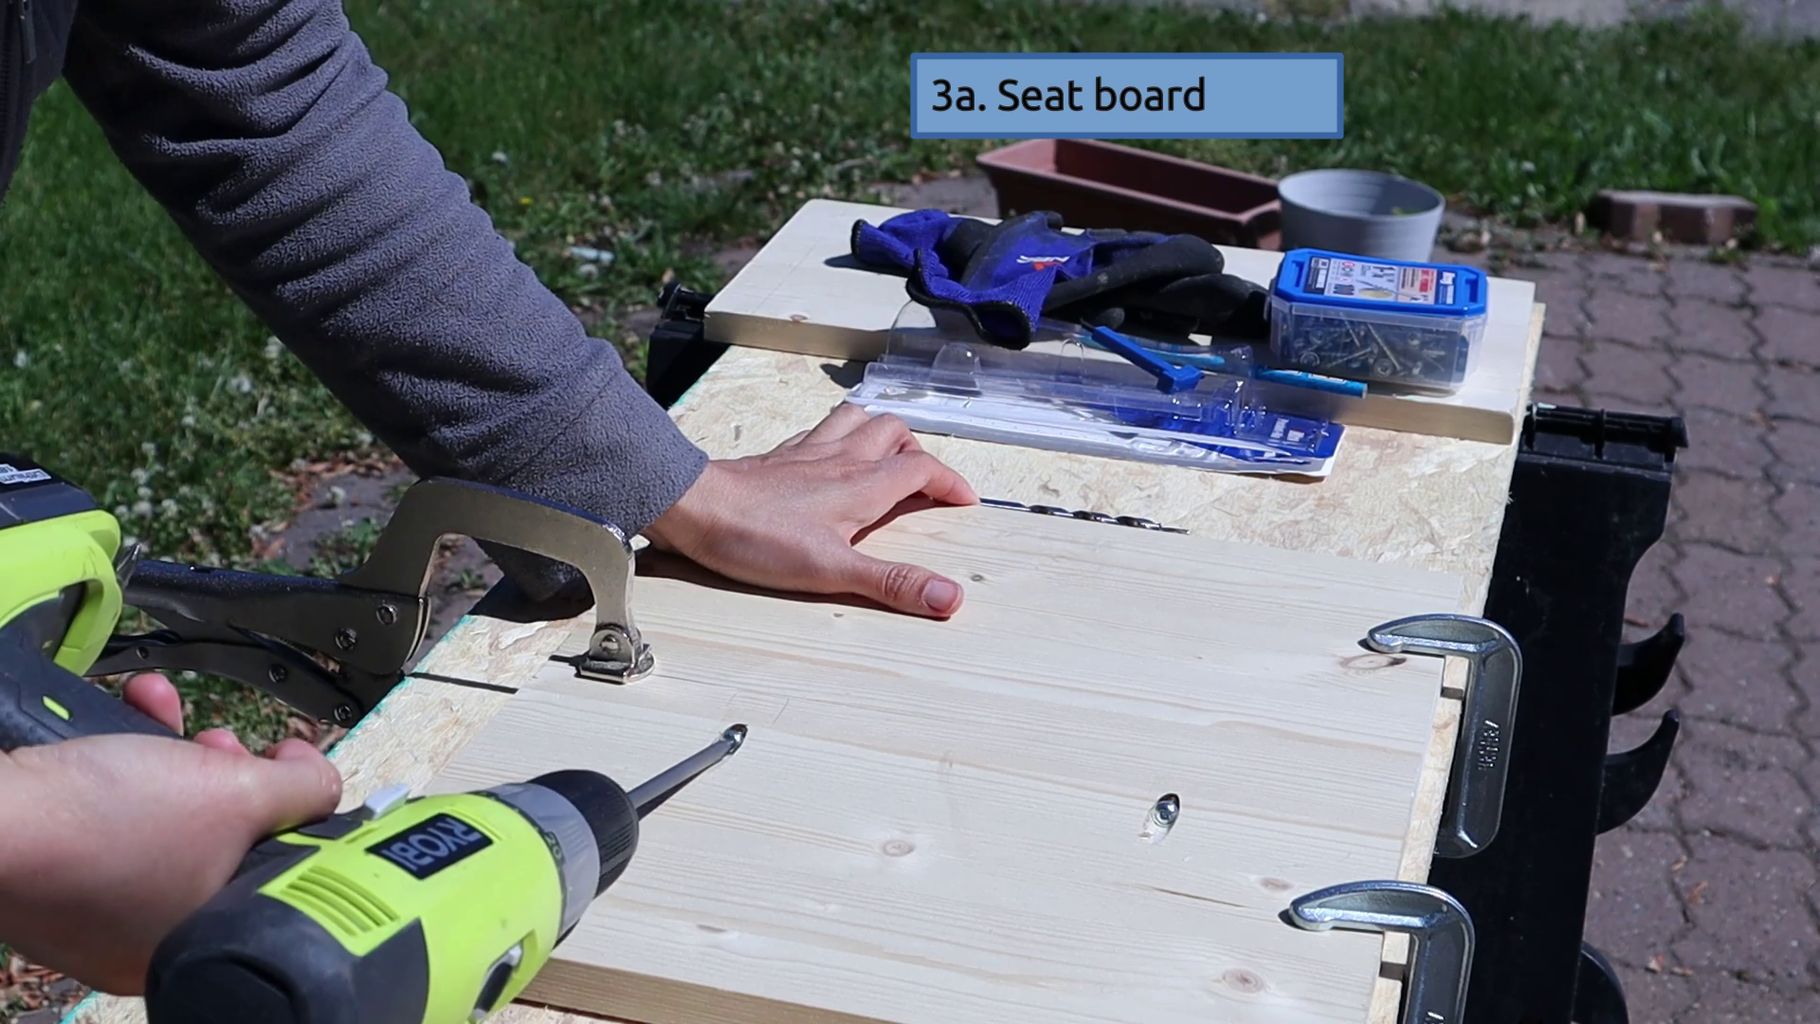 Build the Seat